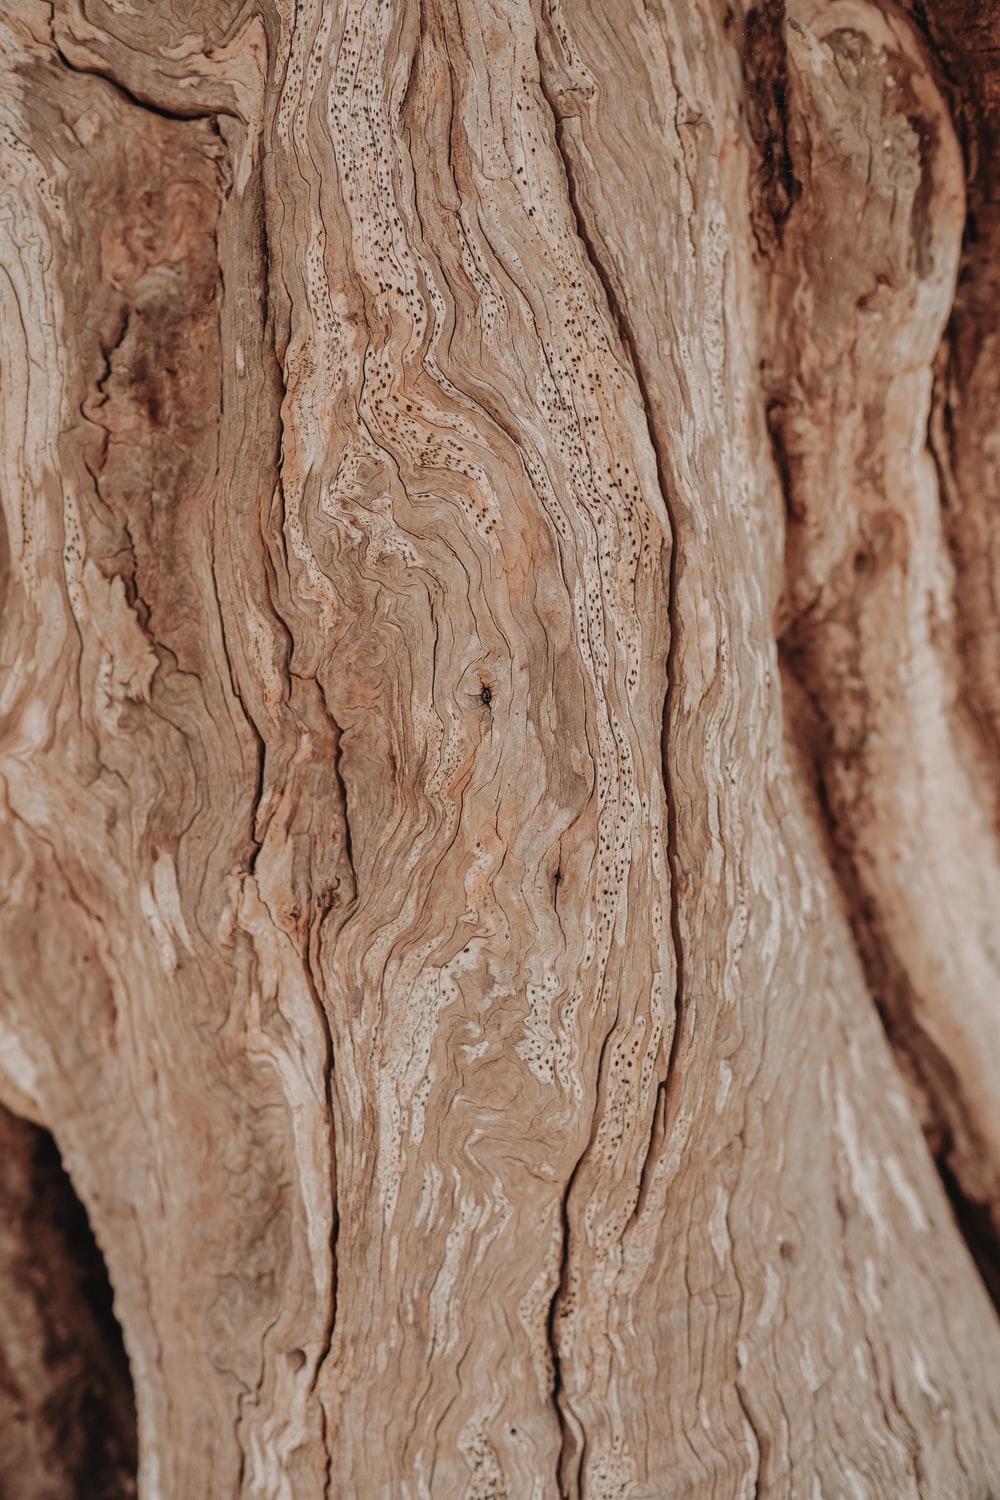 brown wood log in close up photography